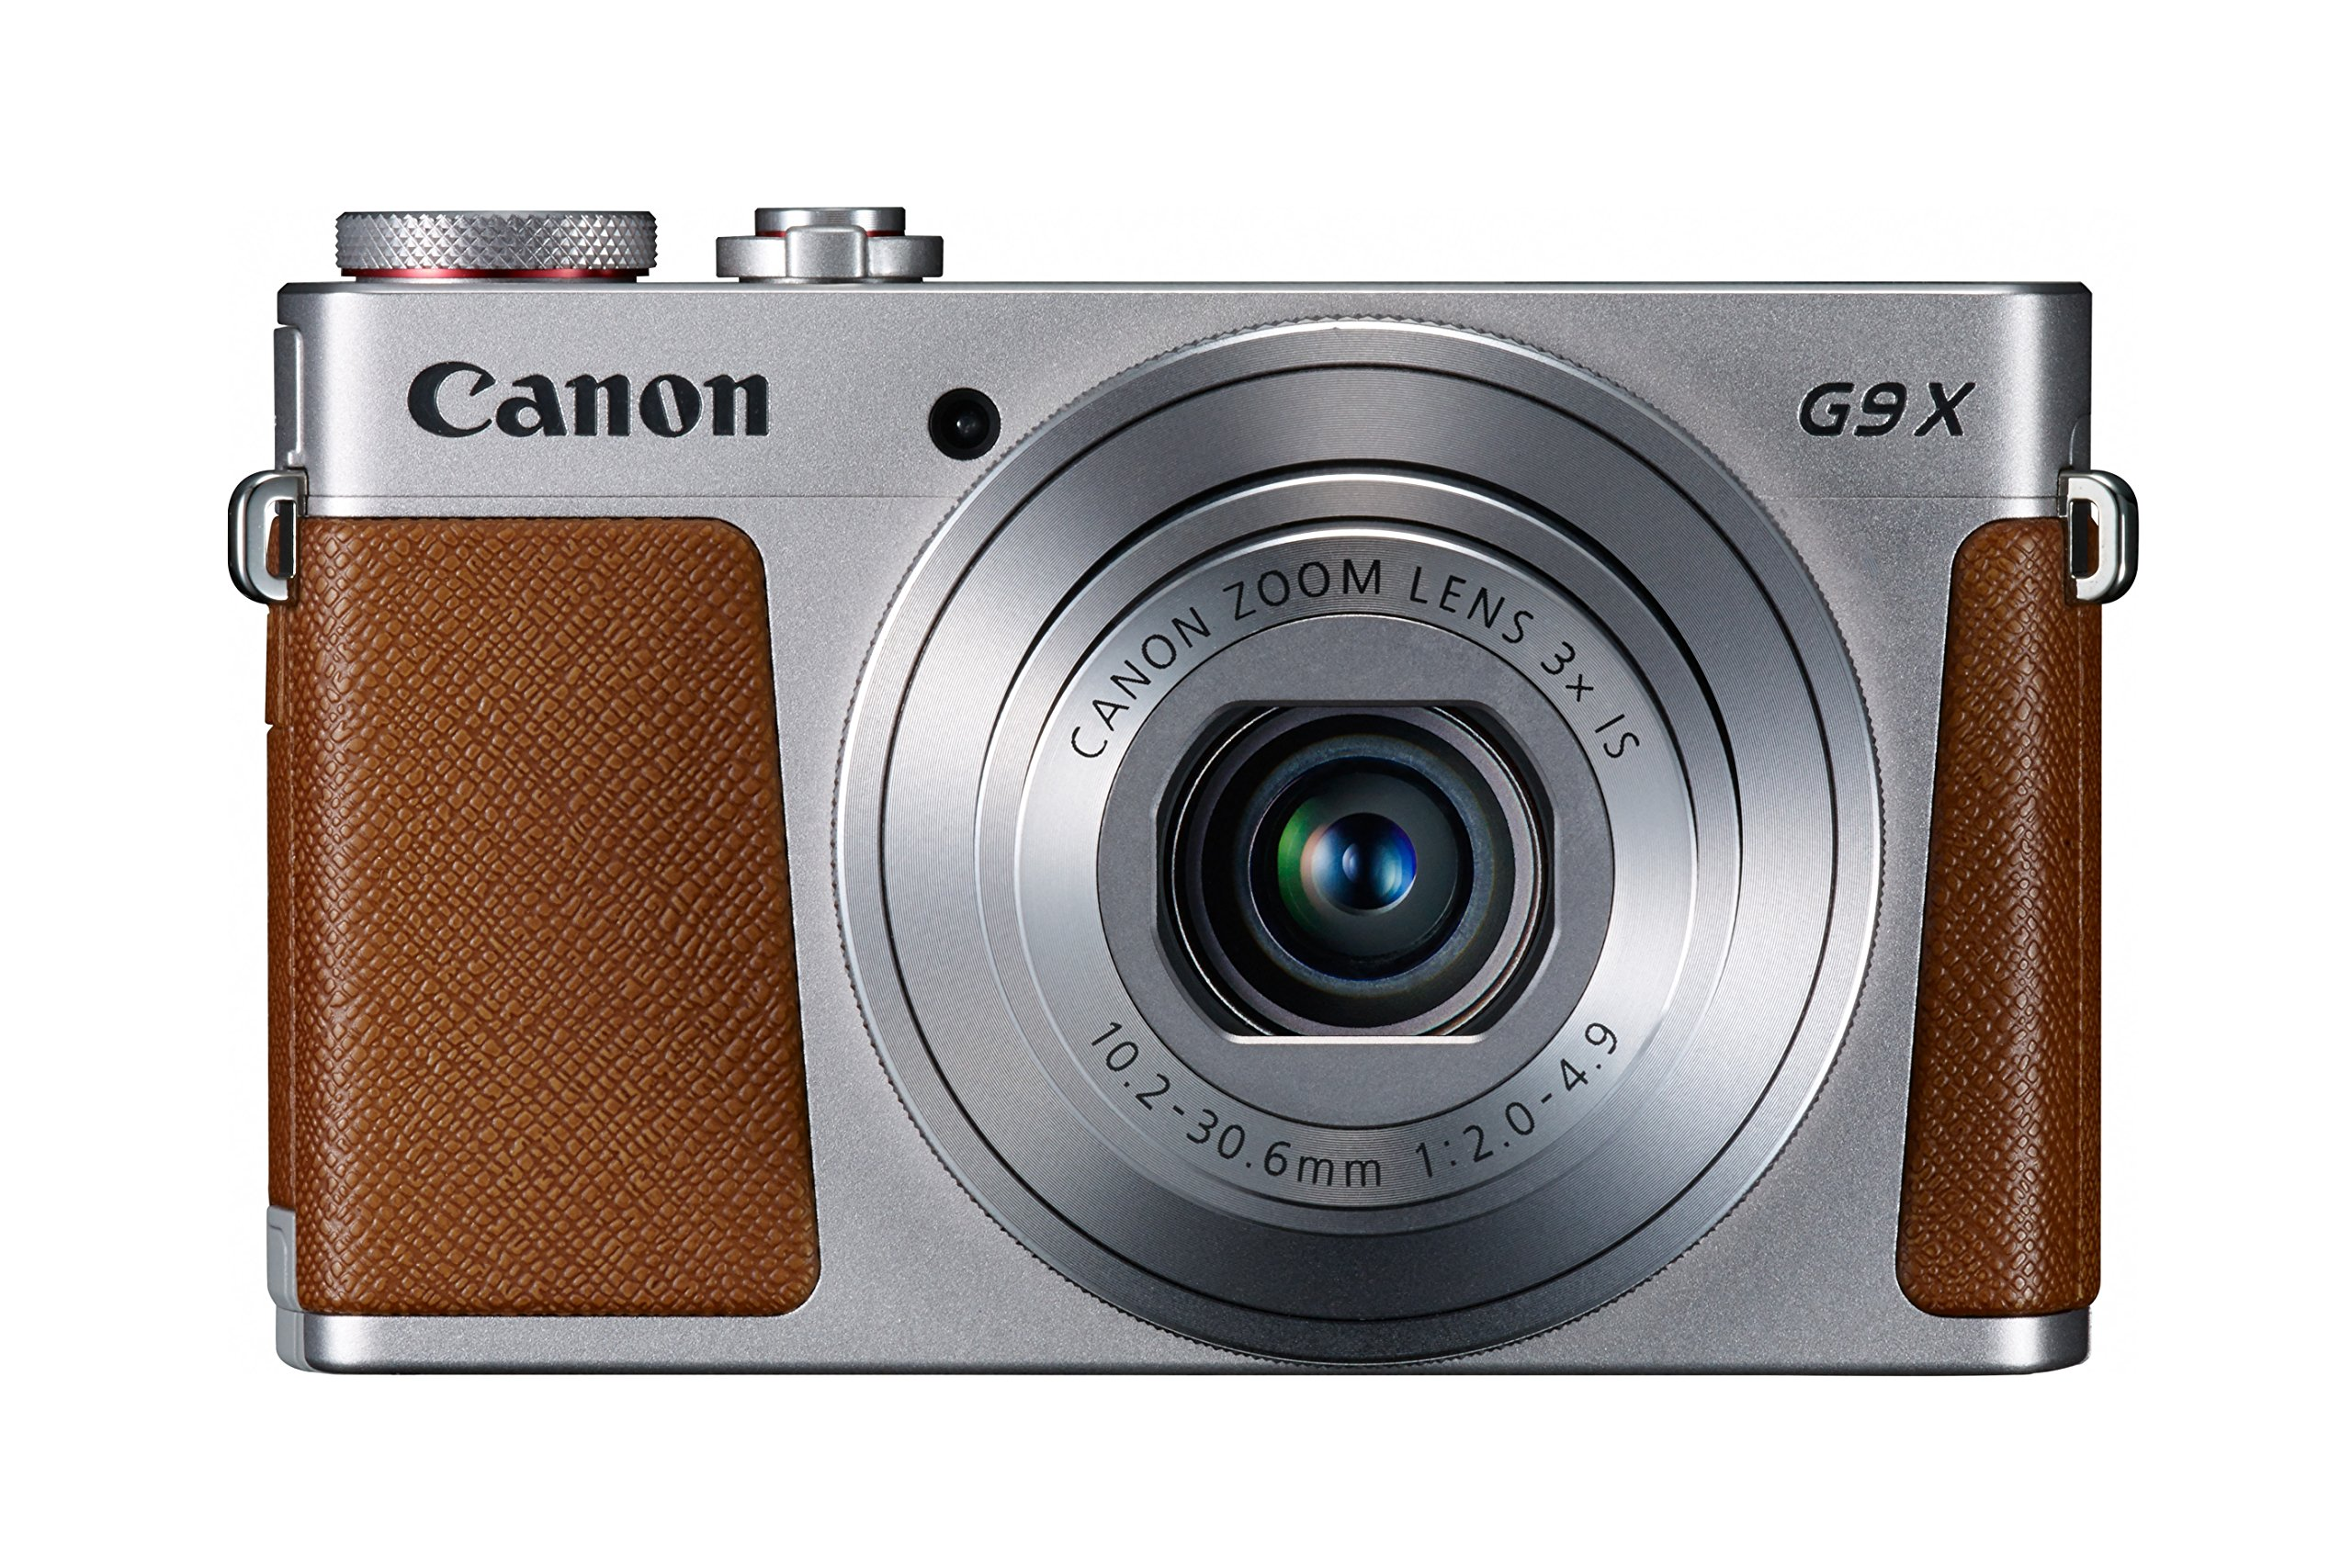 Canon PowerShot G9 X Digital Camera with 3x Optical Zoom, Built-in Wi-Fi and 3 inch LCD touch panel (Silver) by Canon